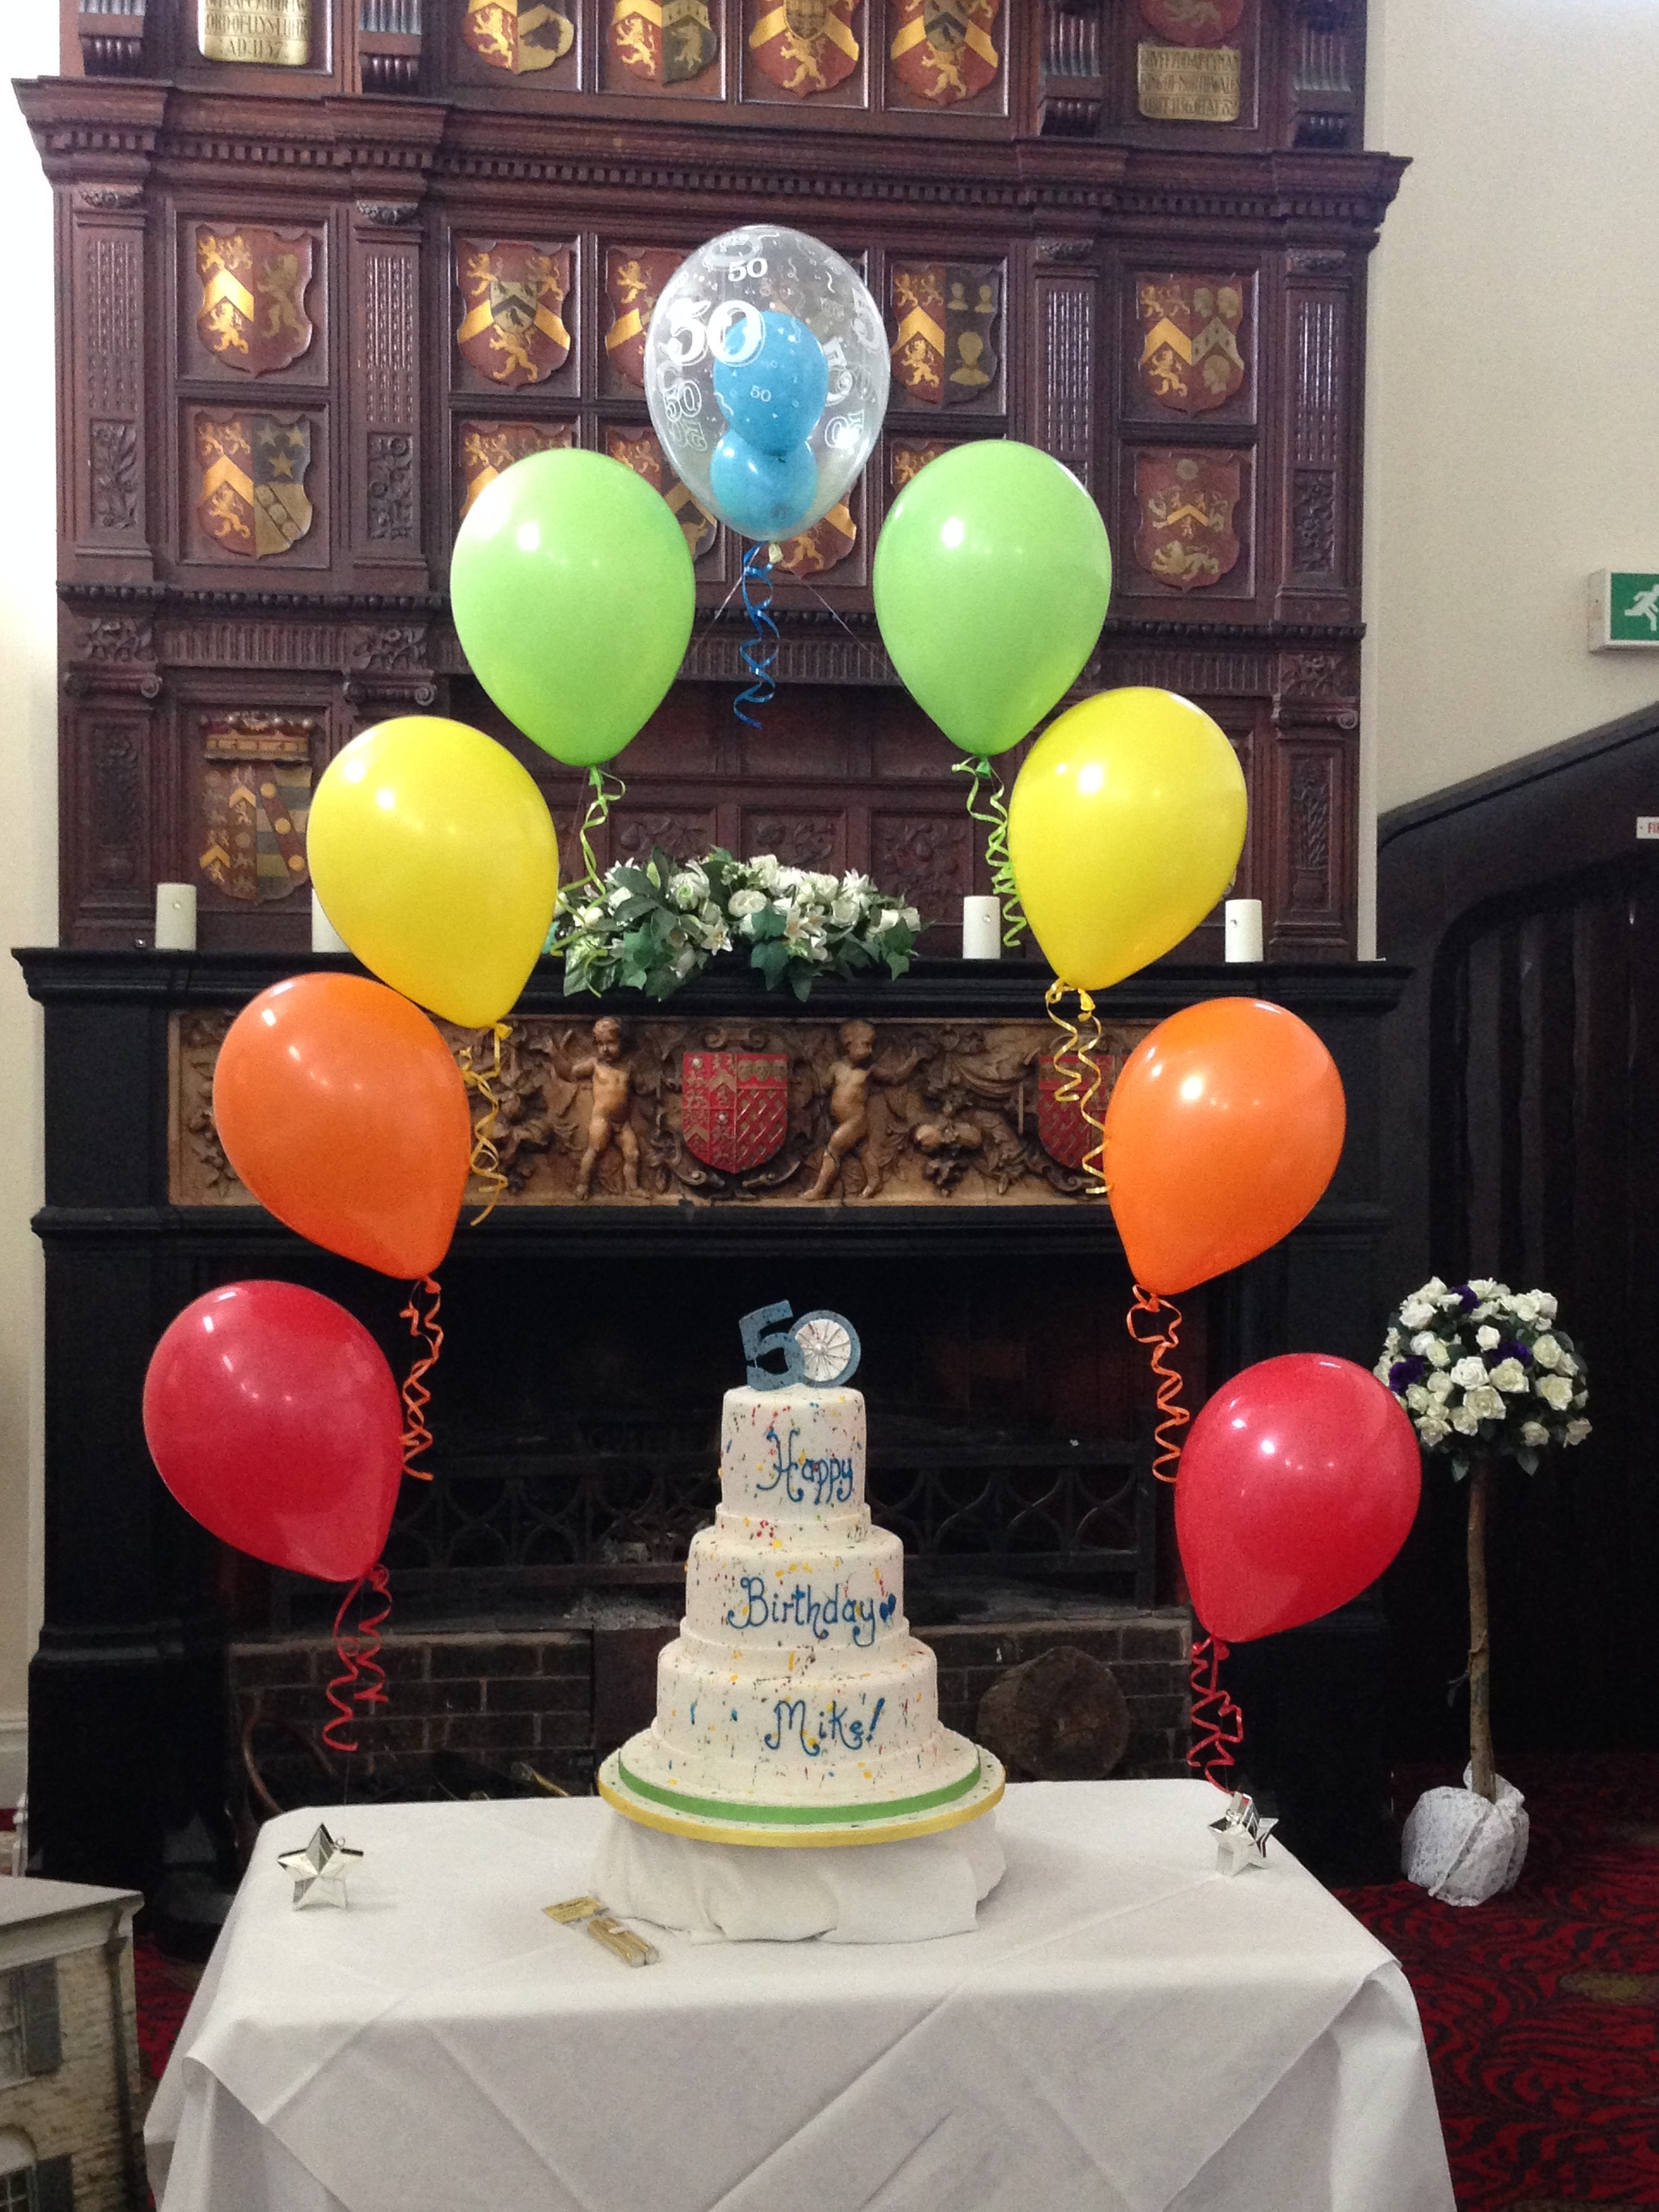 Cake Arch Archives For Every Occasion Balloon Artists Ltd